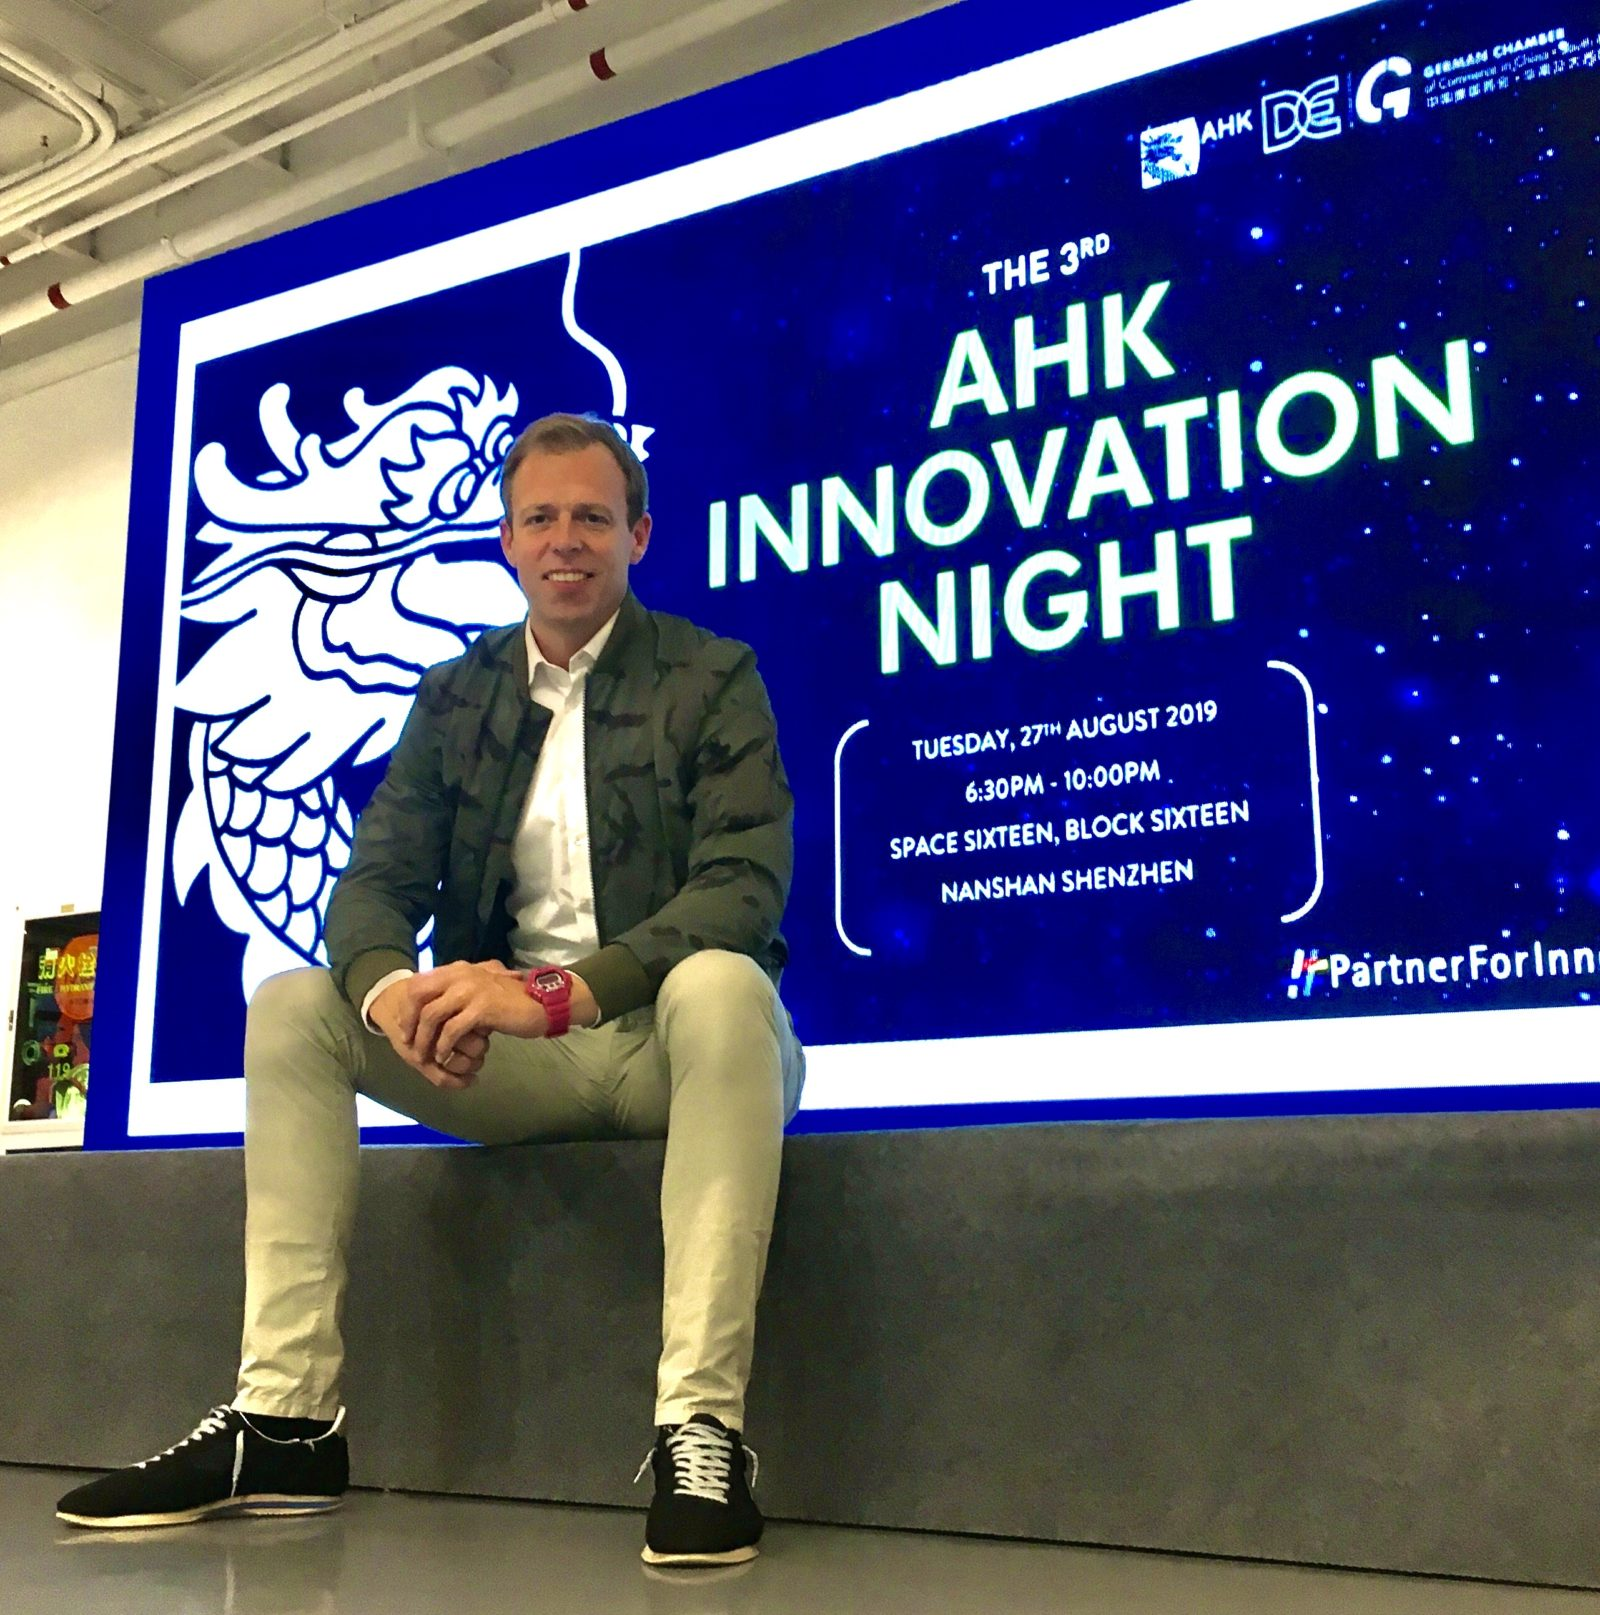 Alexander Witte bei der AHK Innovation Night in Shenzhen